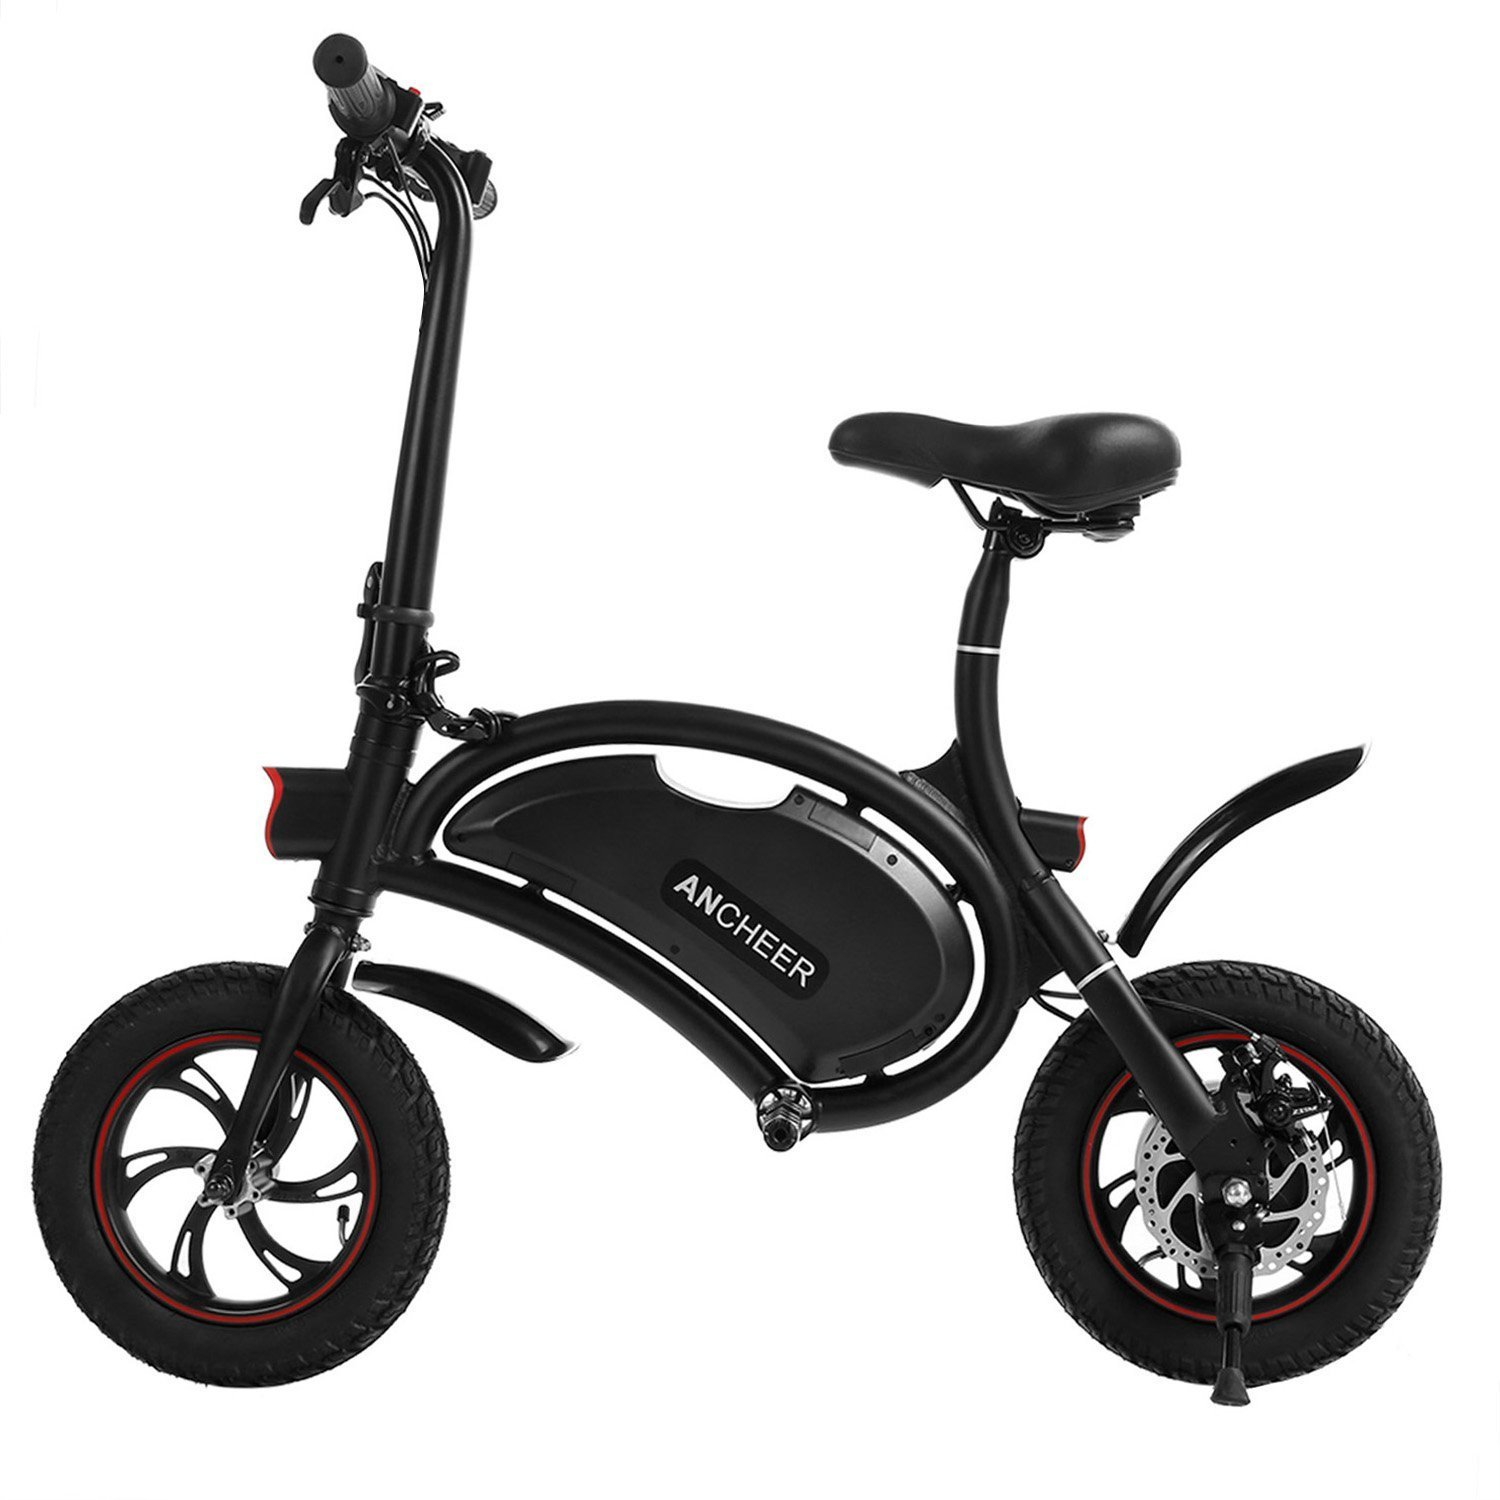 ANCHEER Folding Electric Bicycle/E-Bike/Scooter 350W Ebike with 12 Mile Range, APP Speed Setting (Seller Fulfilled Black-6AH)